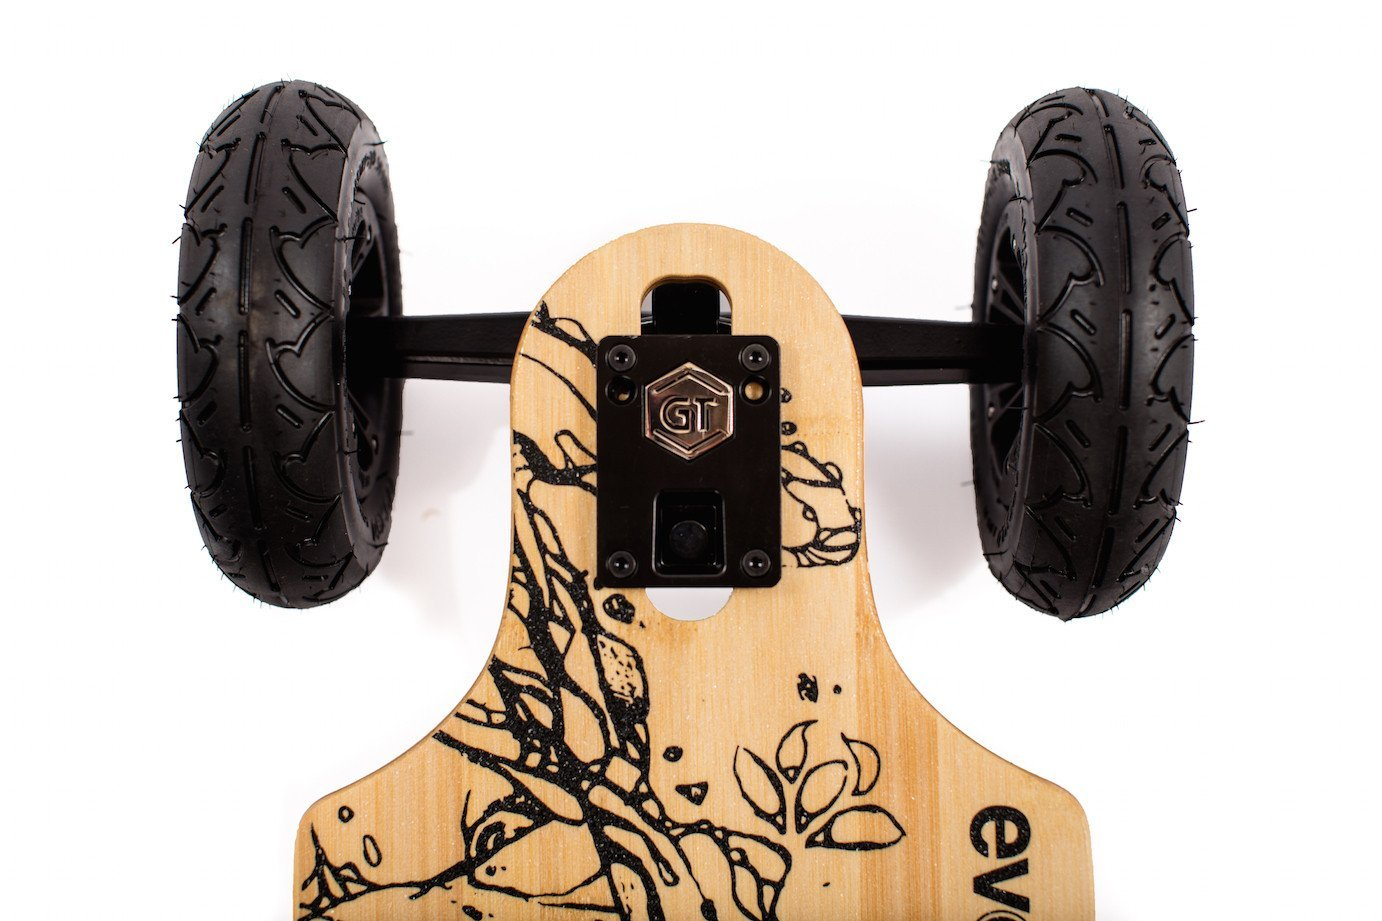 Bamboo GT Series All Terrain